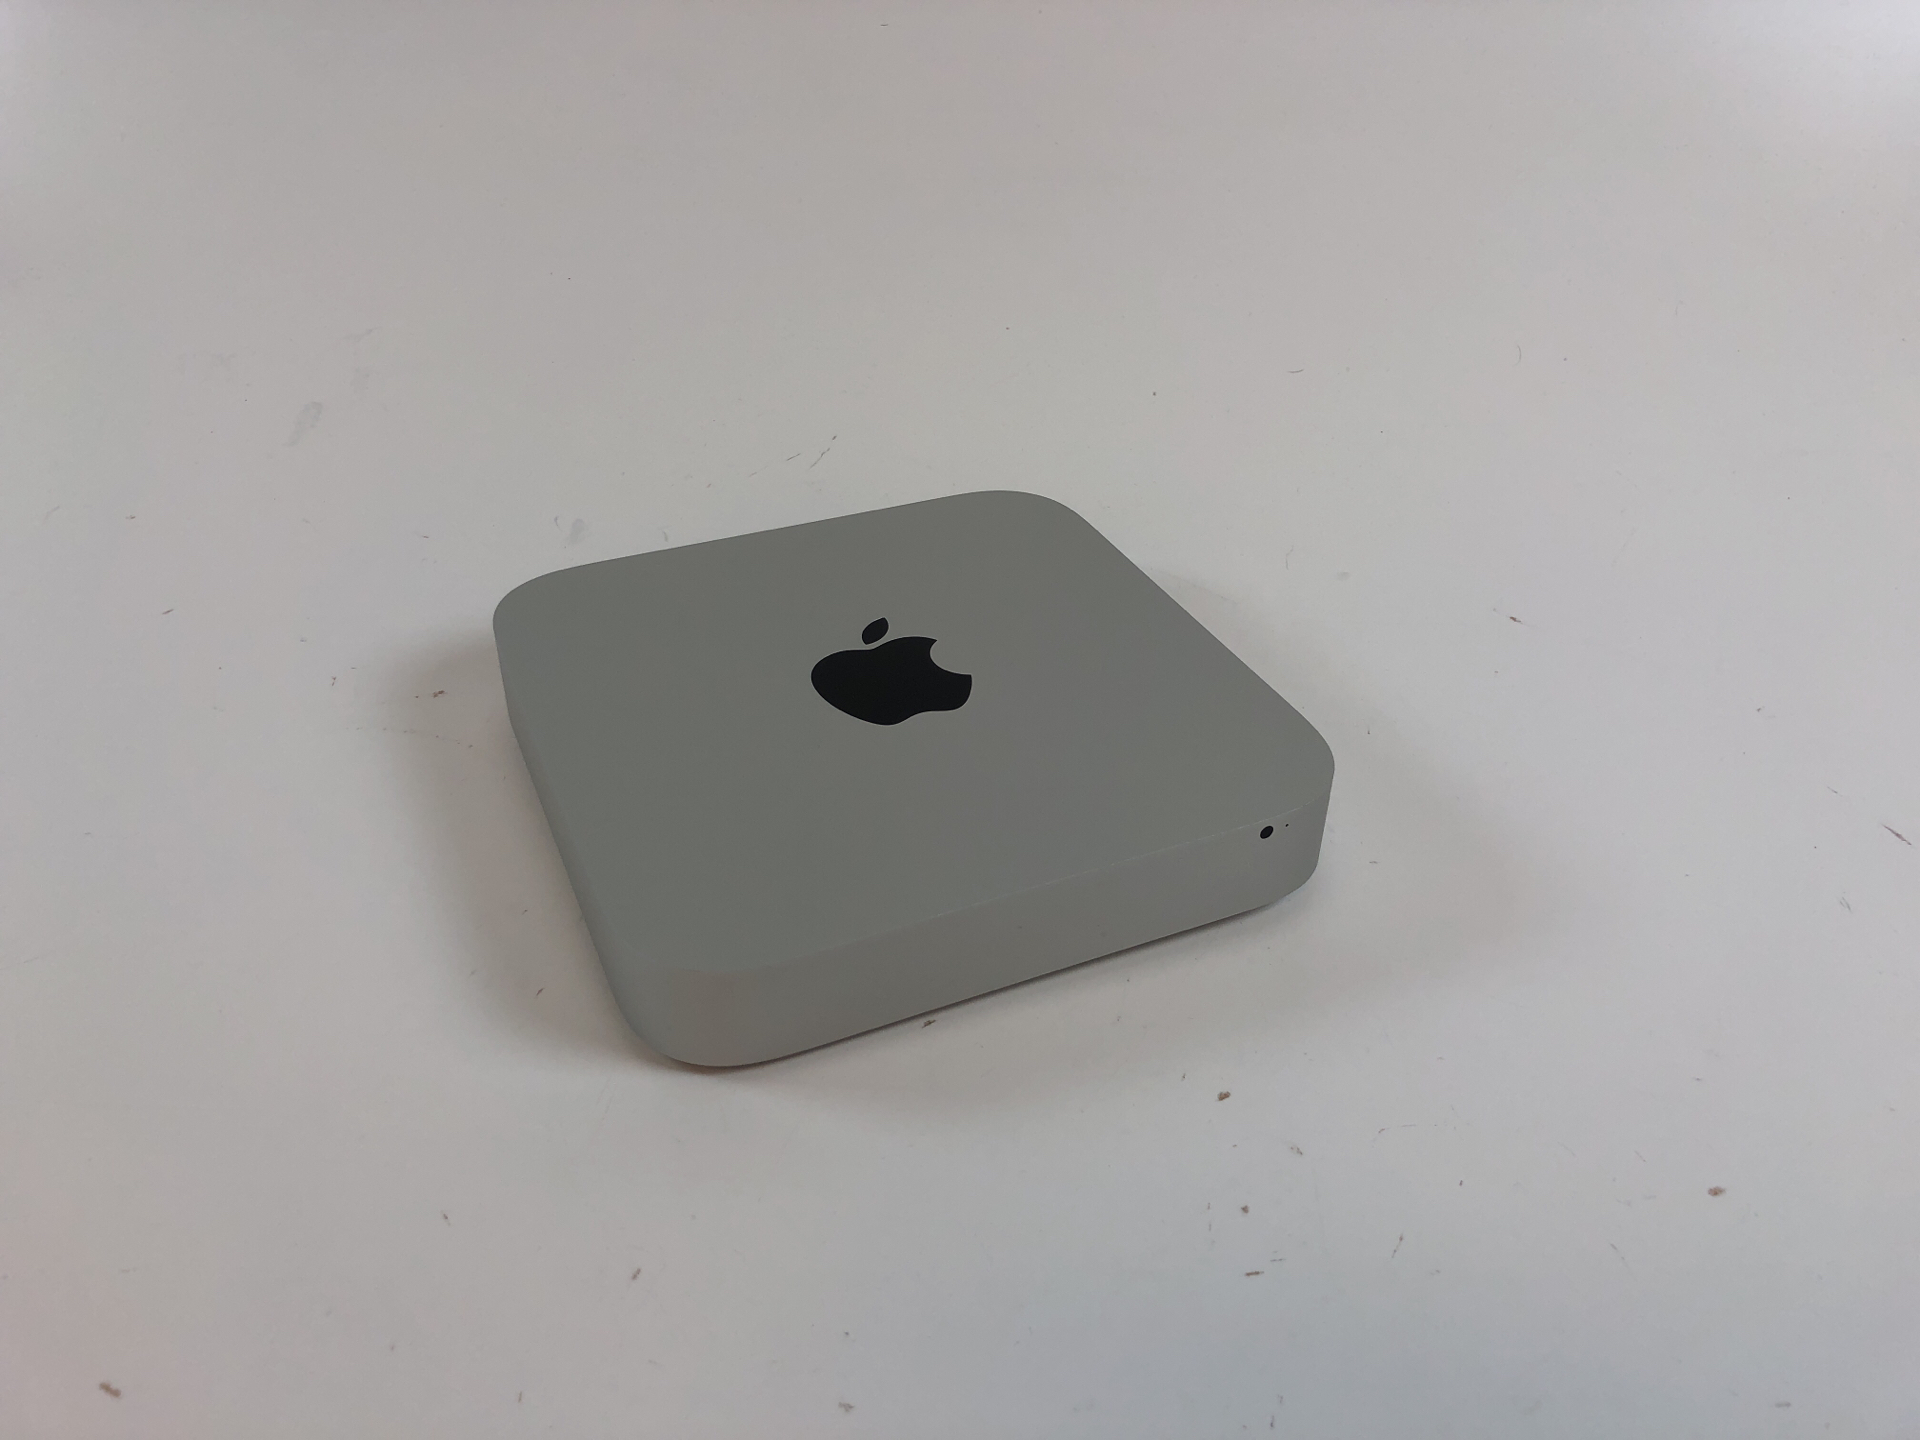 Mac Mini Late 2012 (Intel Core i5 2.5 GHz 8 GB RAM 256 GB SSD), Intel Core i5 2.5 GHz, 4 GB RAM, 240GB SSD, imagen 1